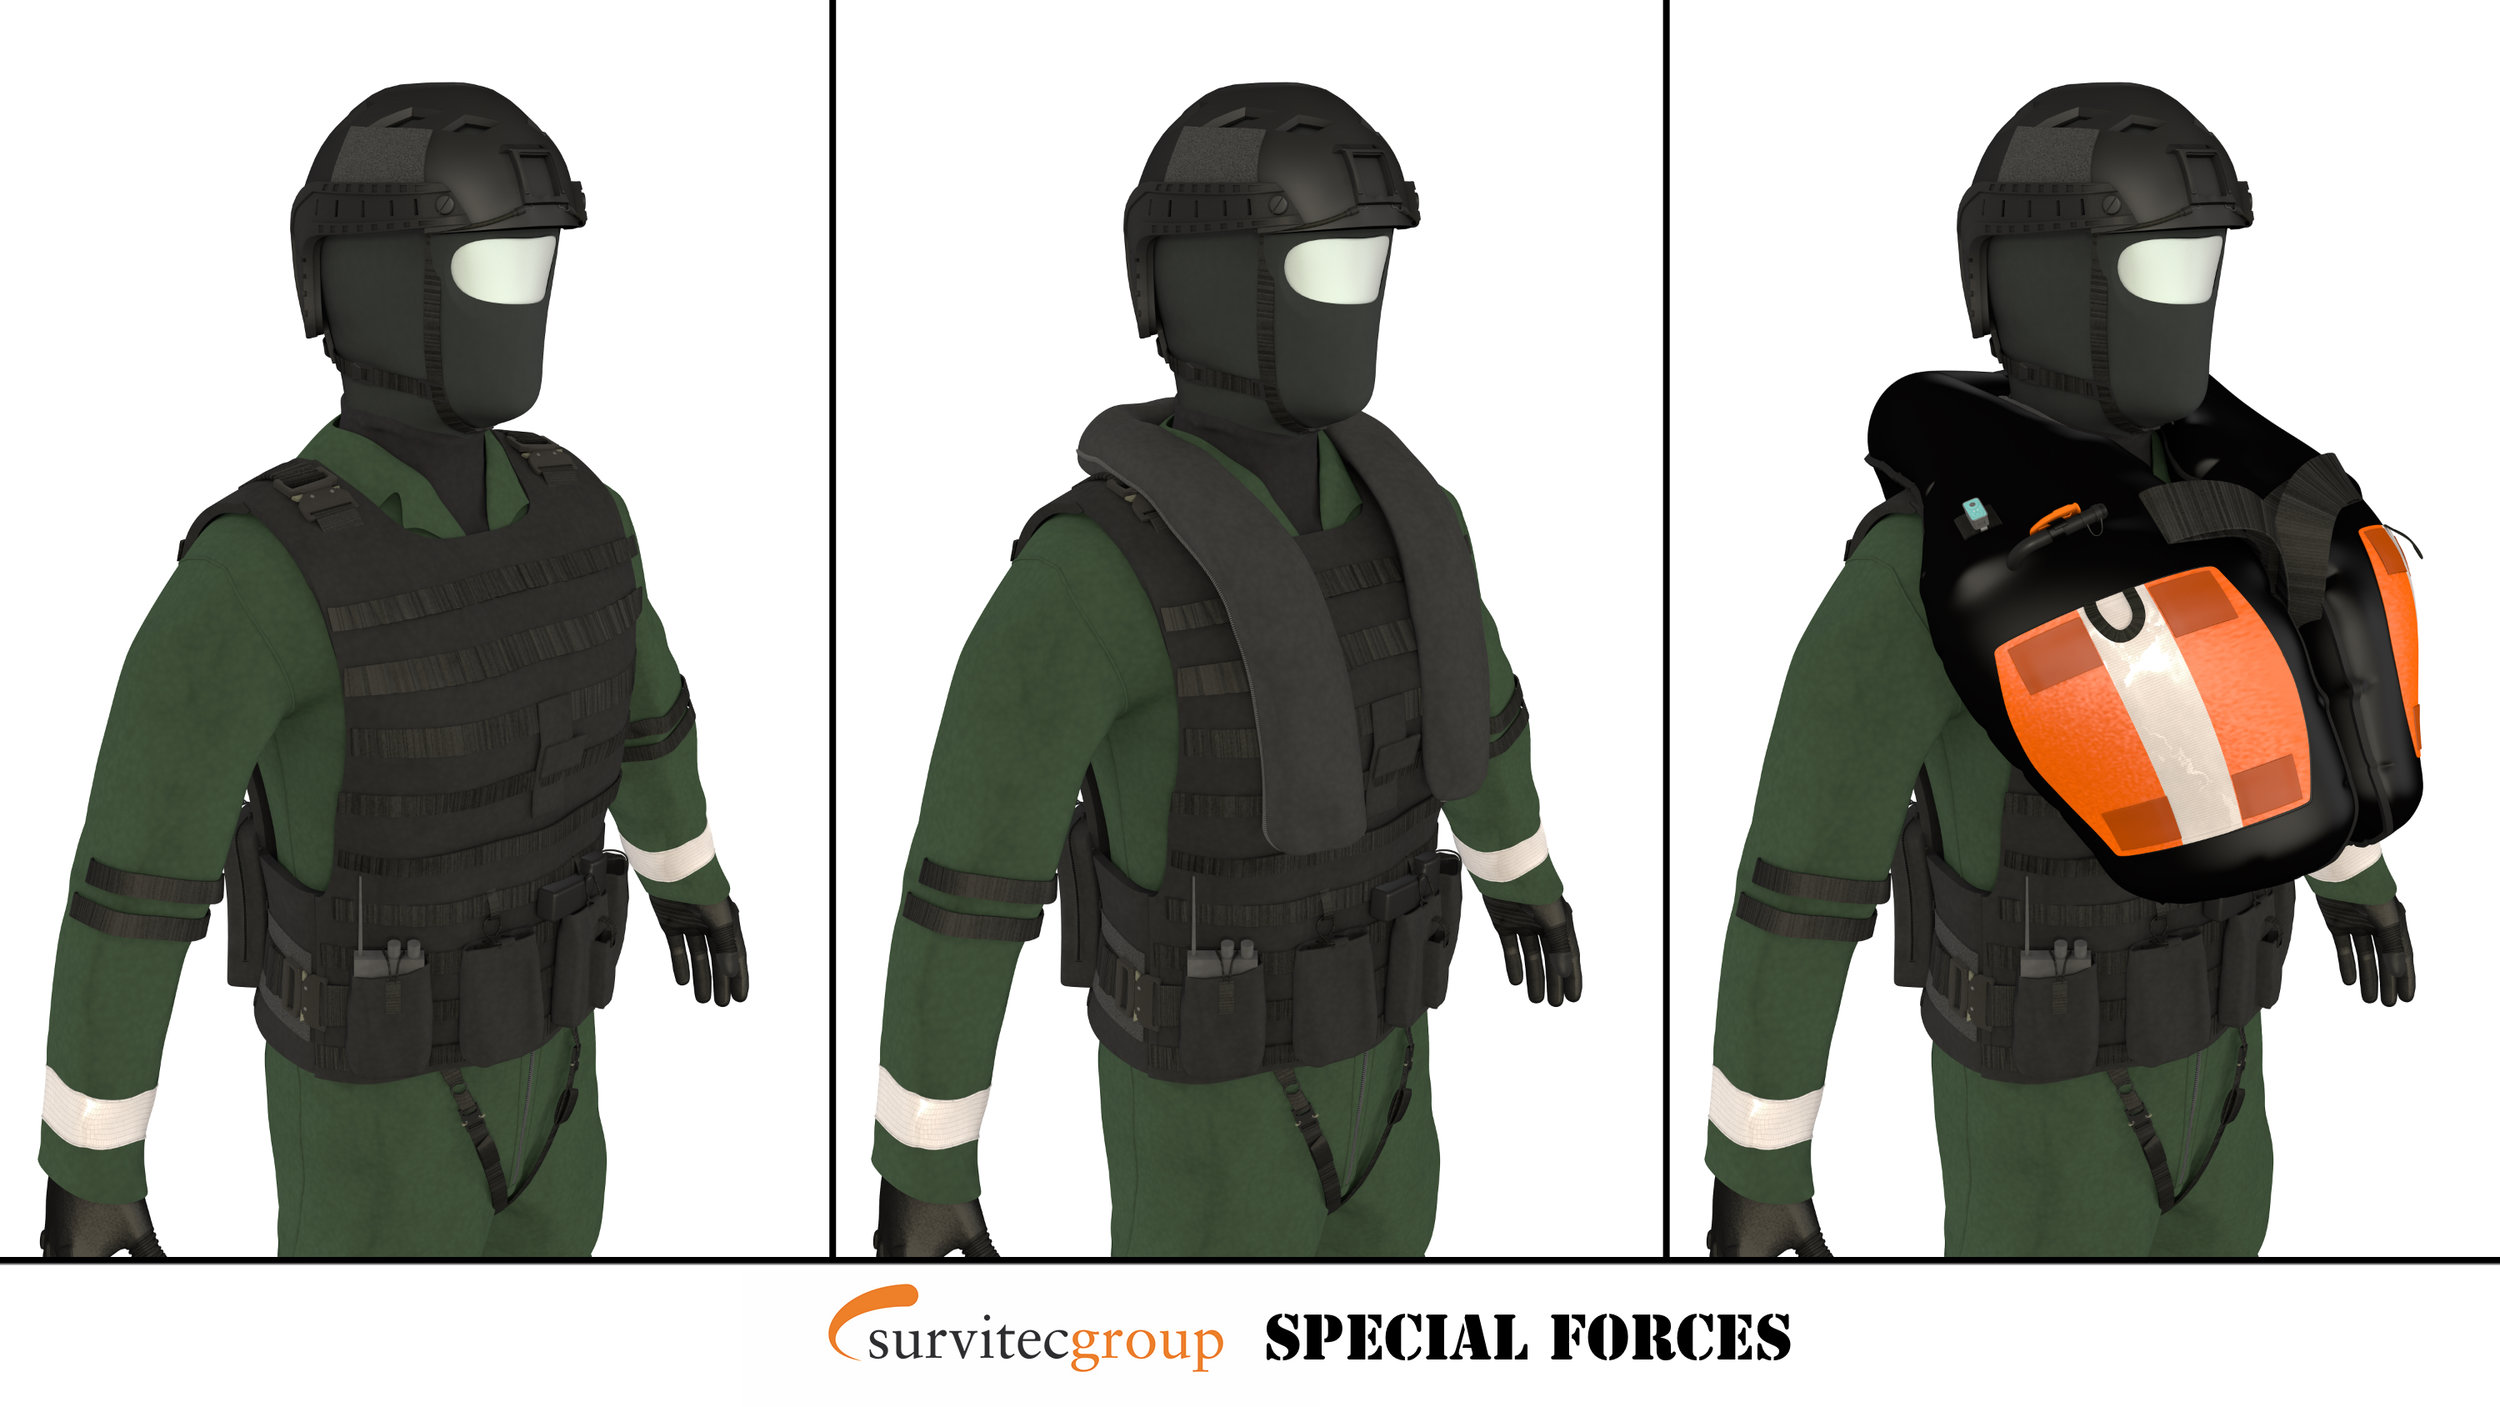 Special Forces 02.jpg